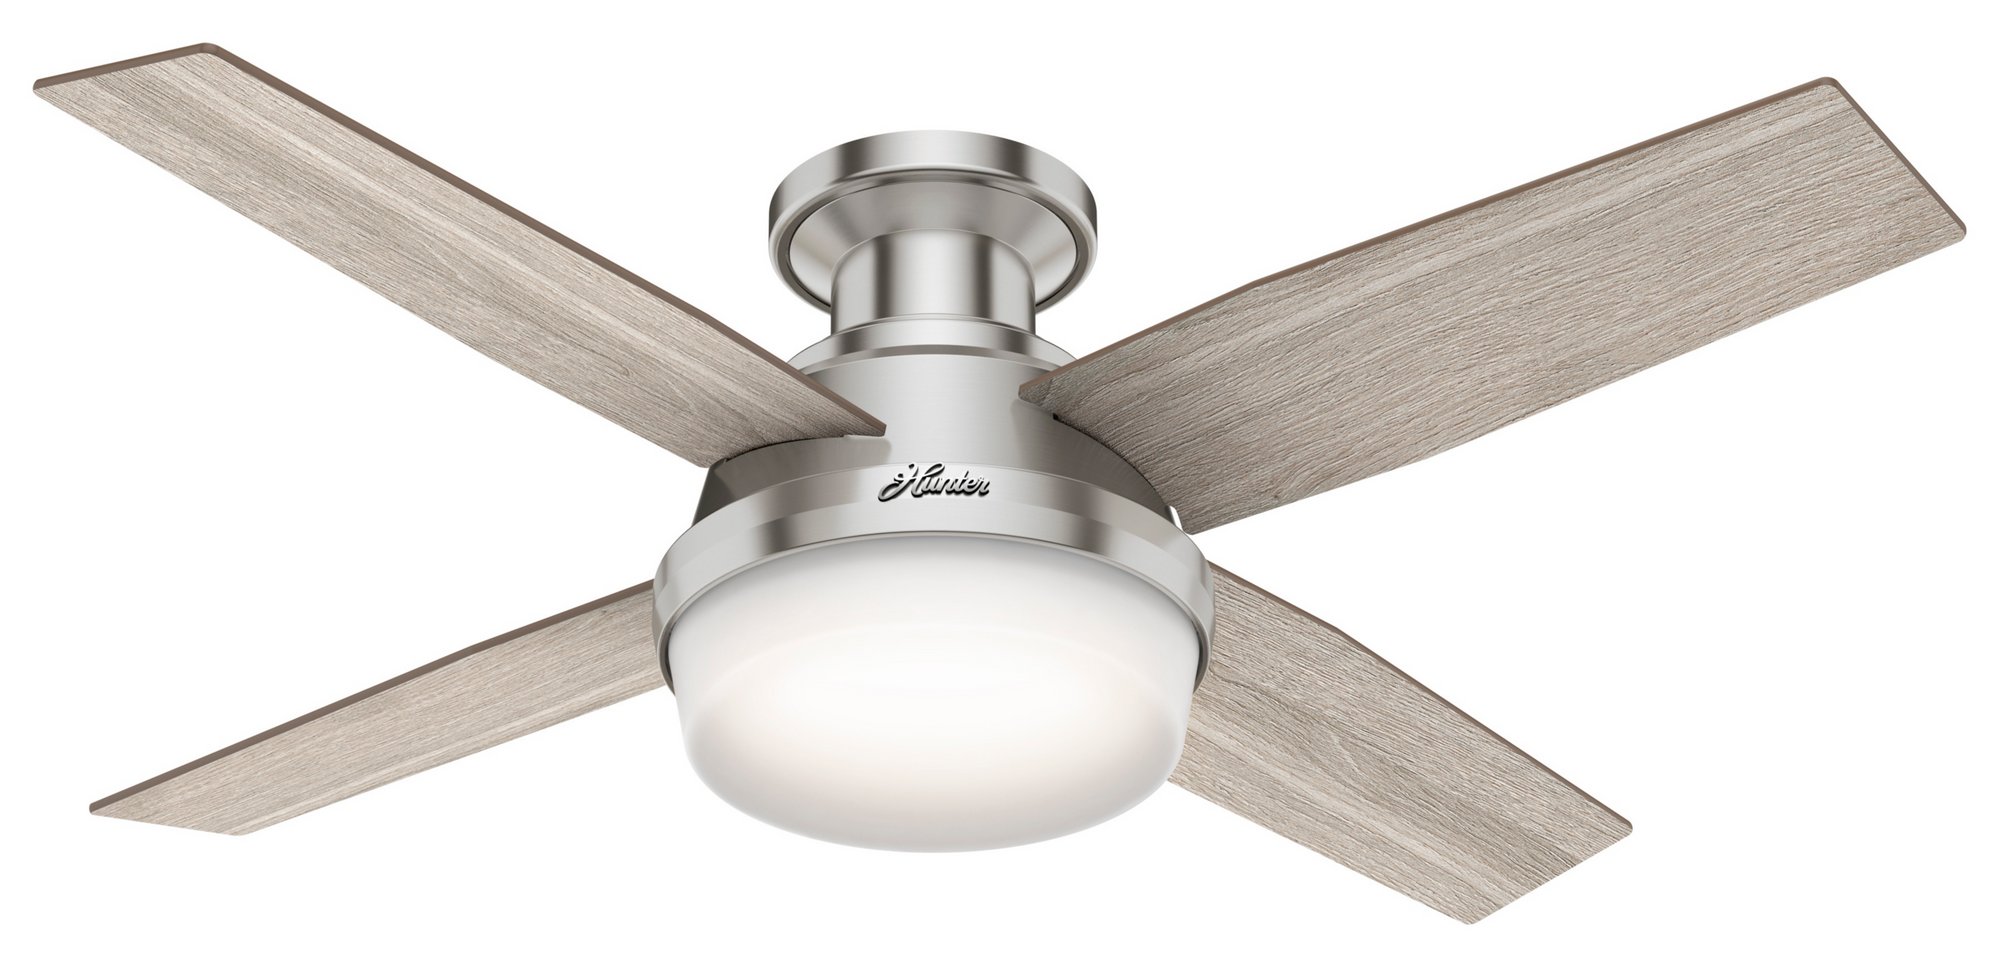 Hunter Indoor Low Profile Dempsey Ceiling Fan with LED LightJD inch, Brushed Nickel/Chrome, 50282